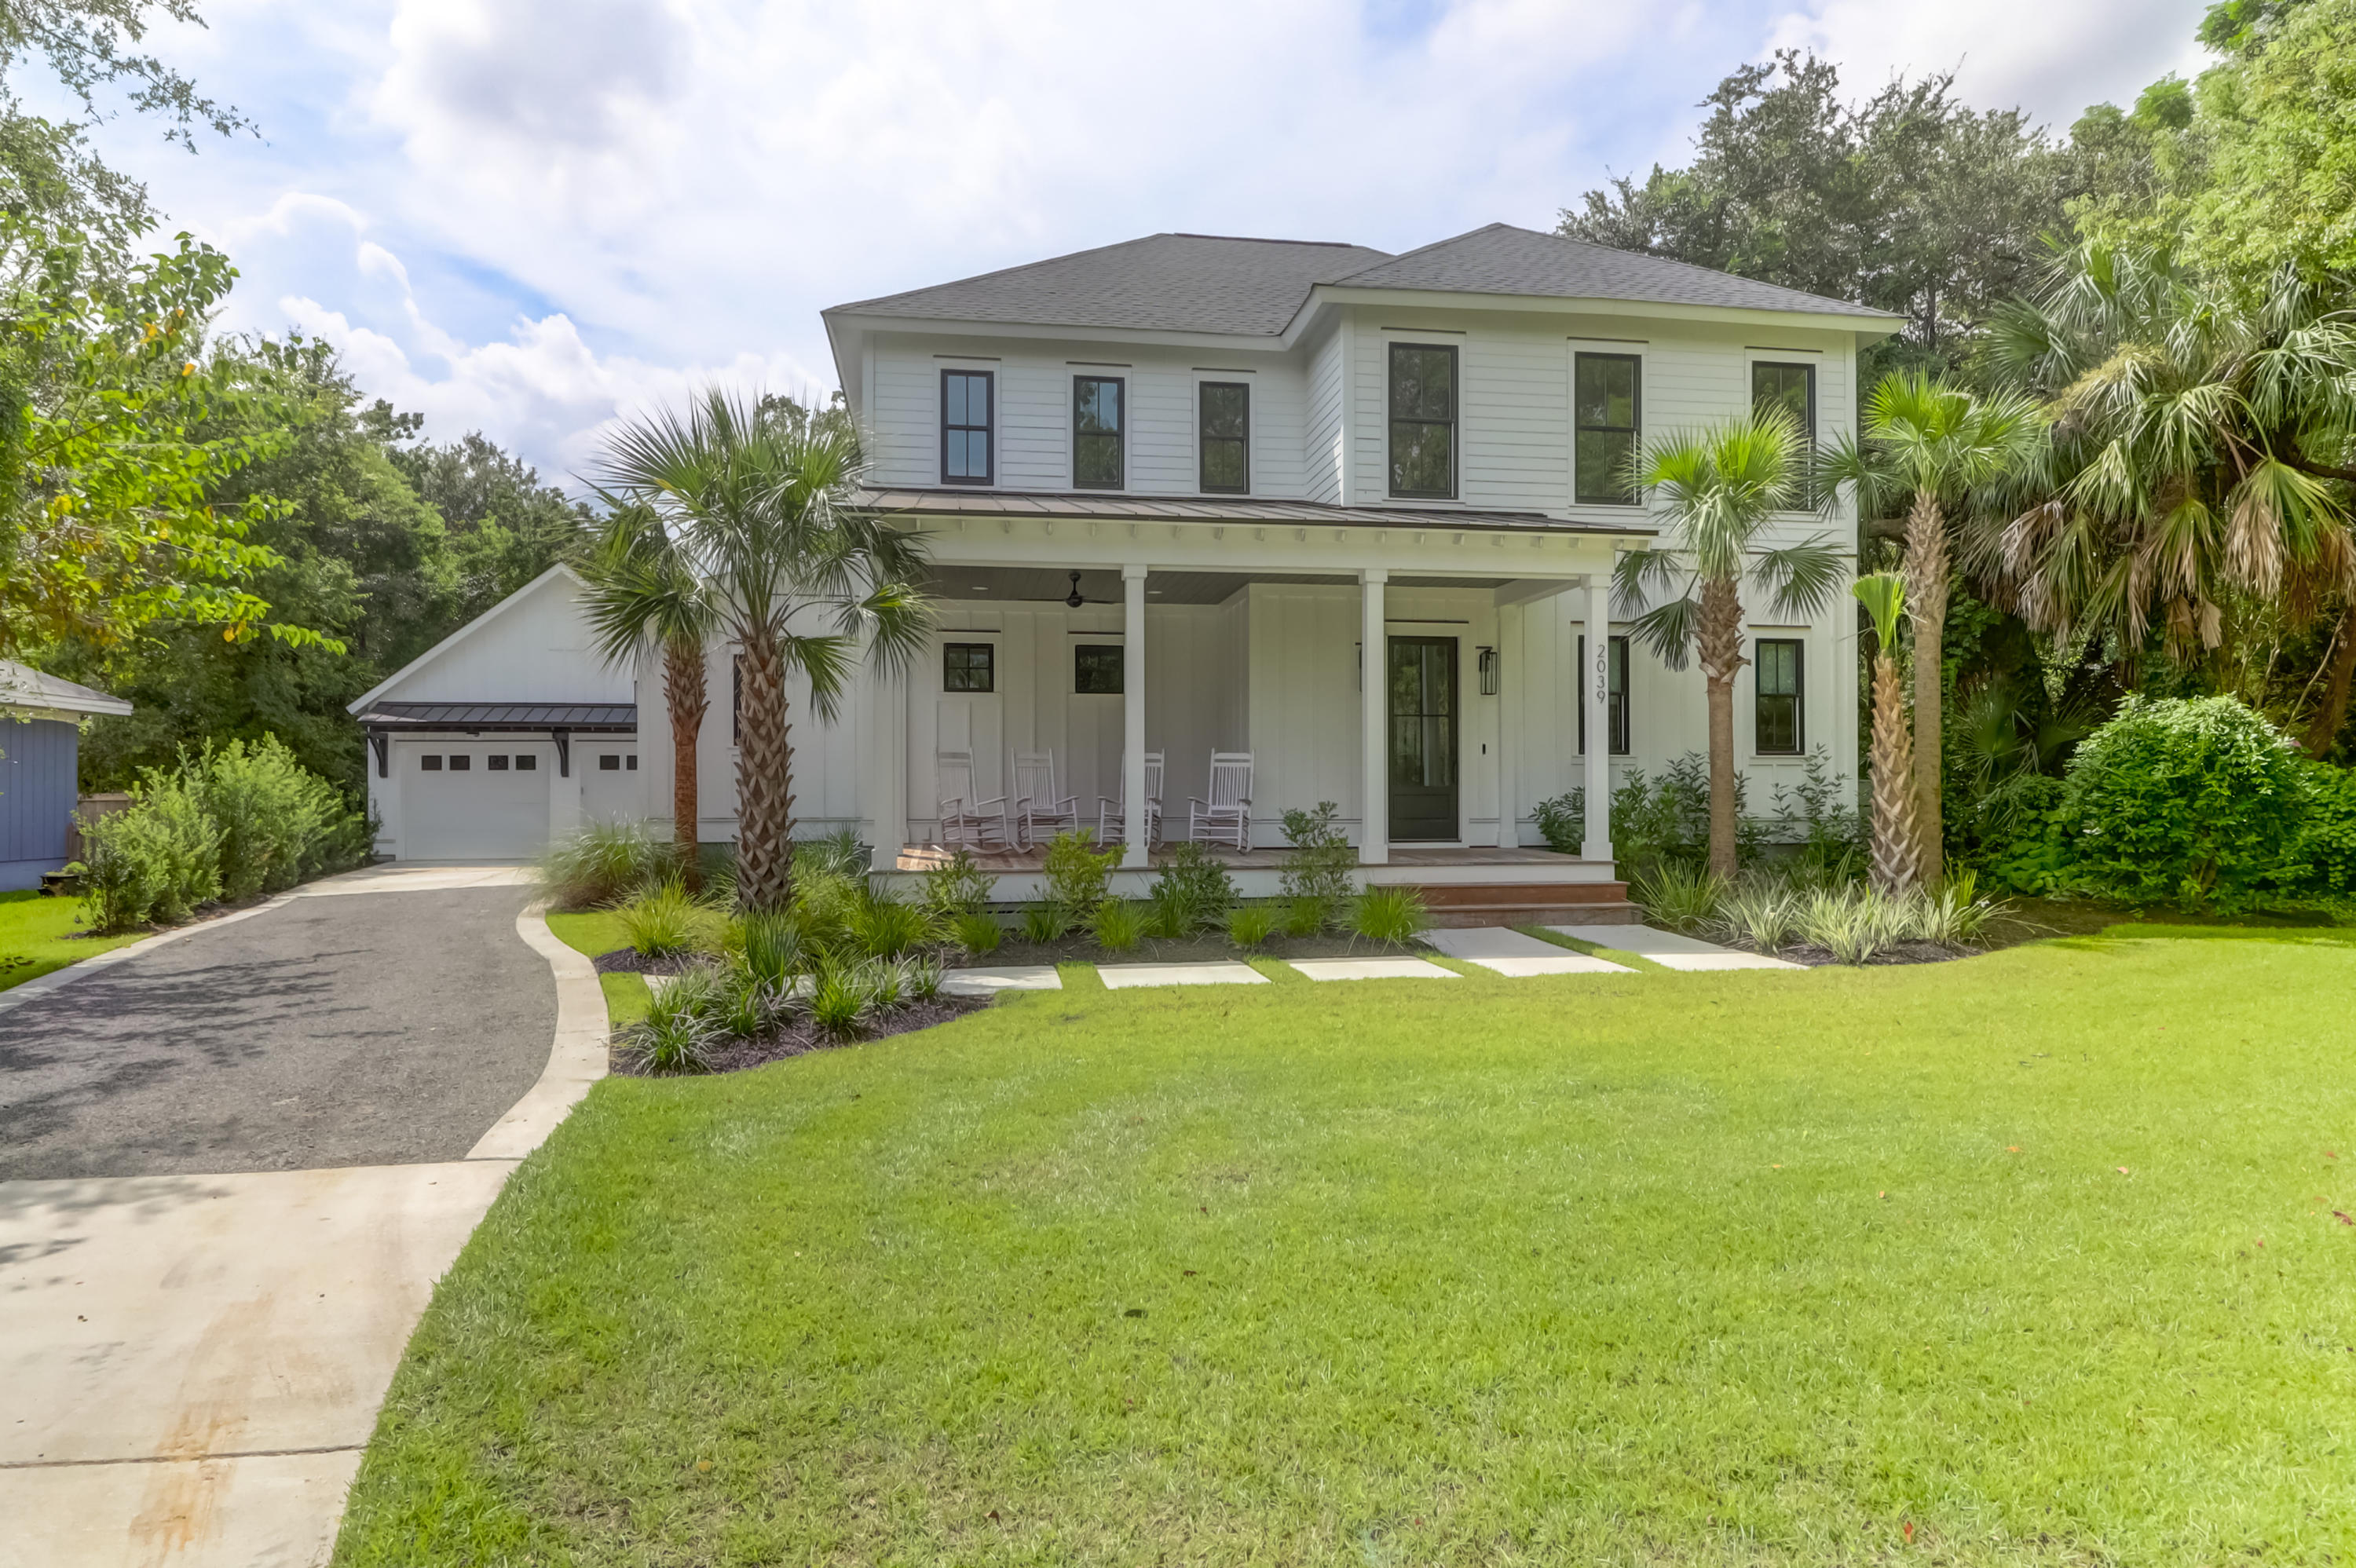 Riverland Terrace Homes For Sale - 2039 Parkway Dr, Charleston, SC - 0